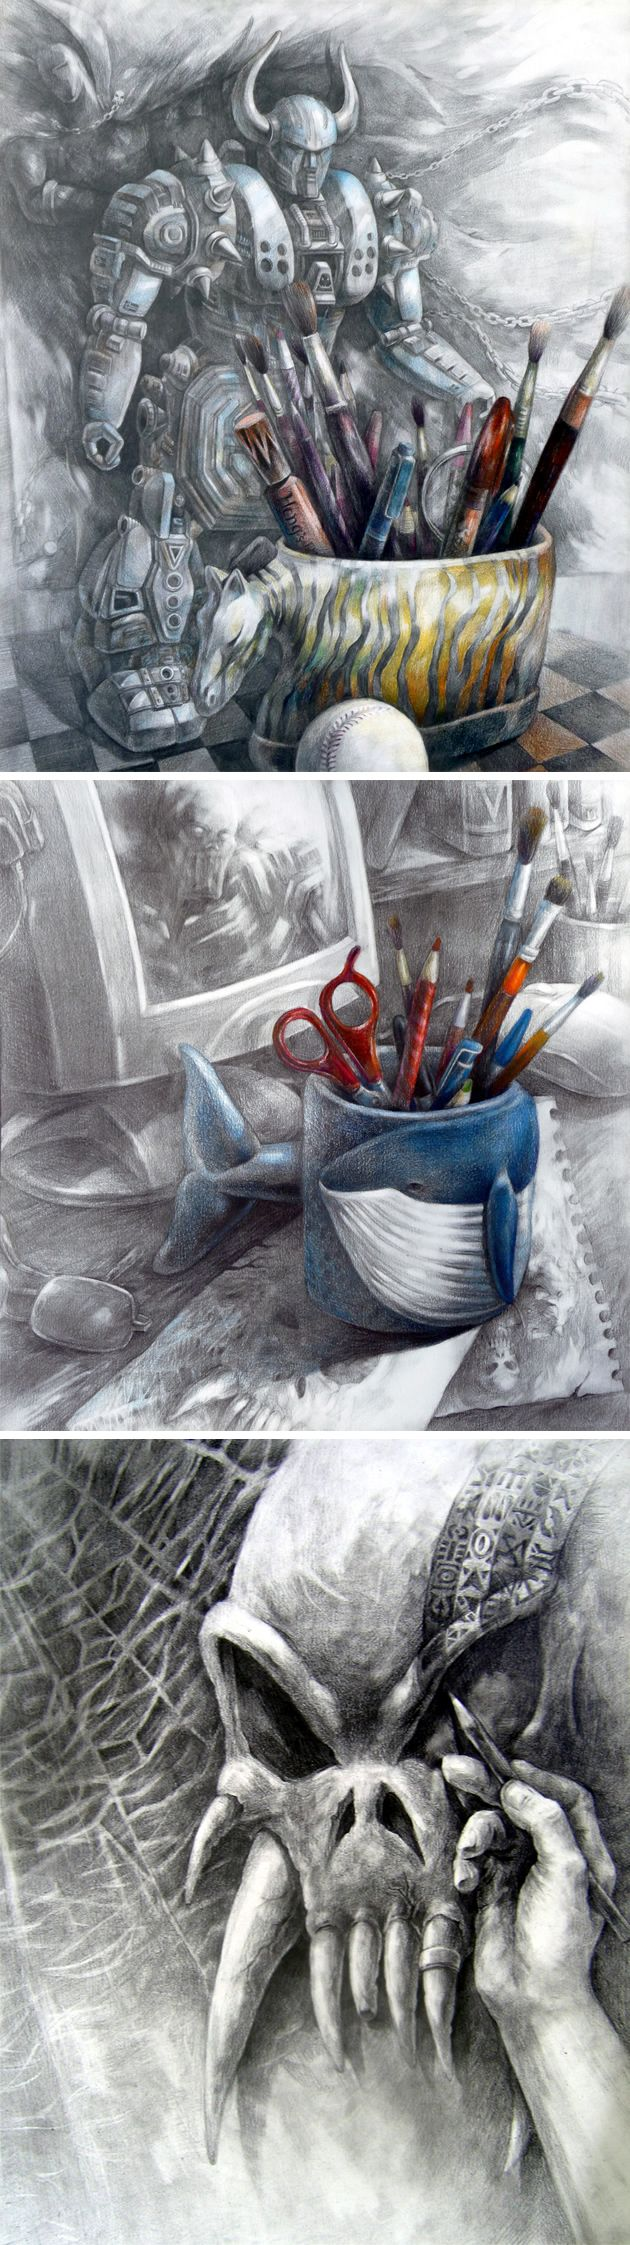 Awesome Character Drawings: AP Studio Art | Student Art Guide